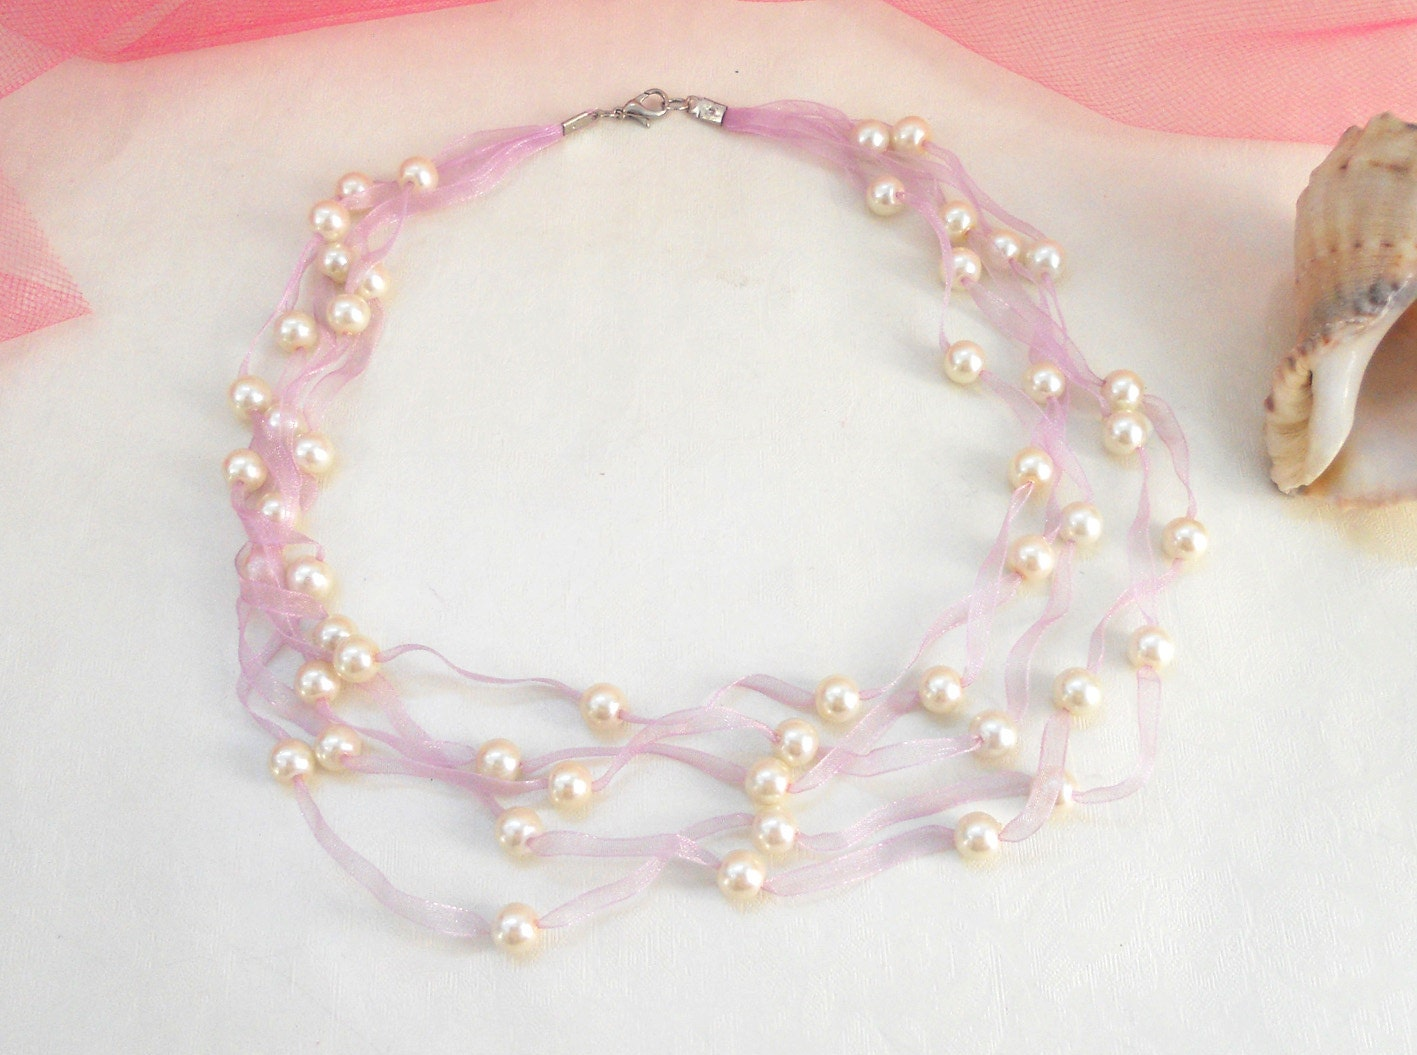 Pearl necklace - wedding - bridal - elegant - asteriascollection